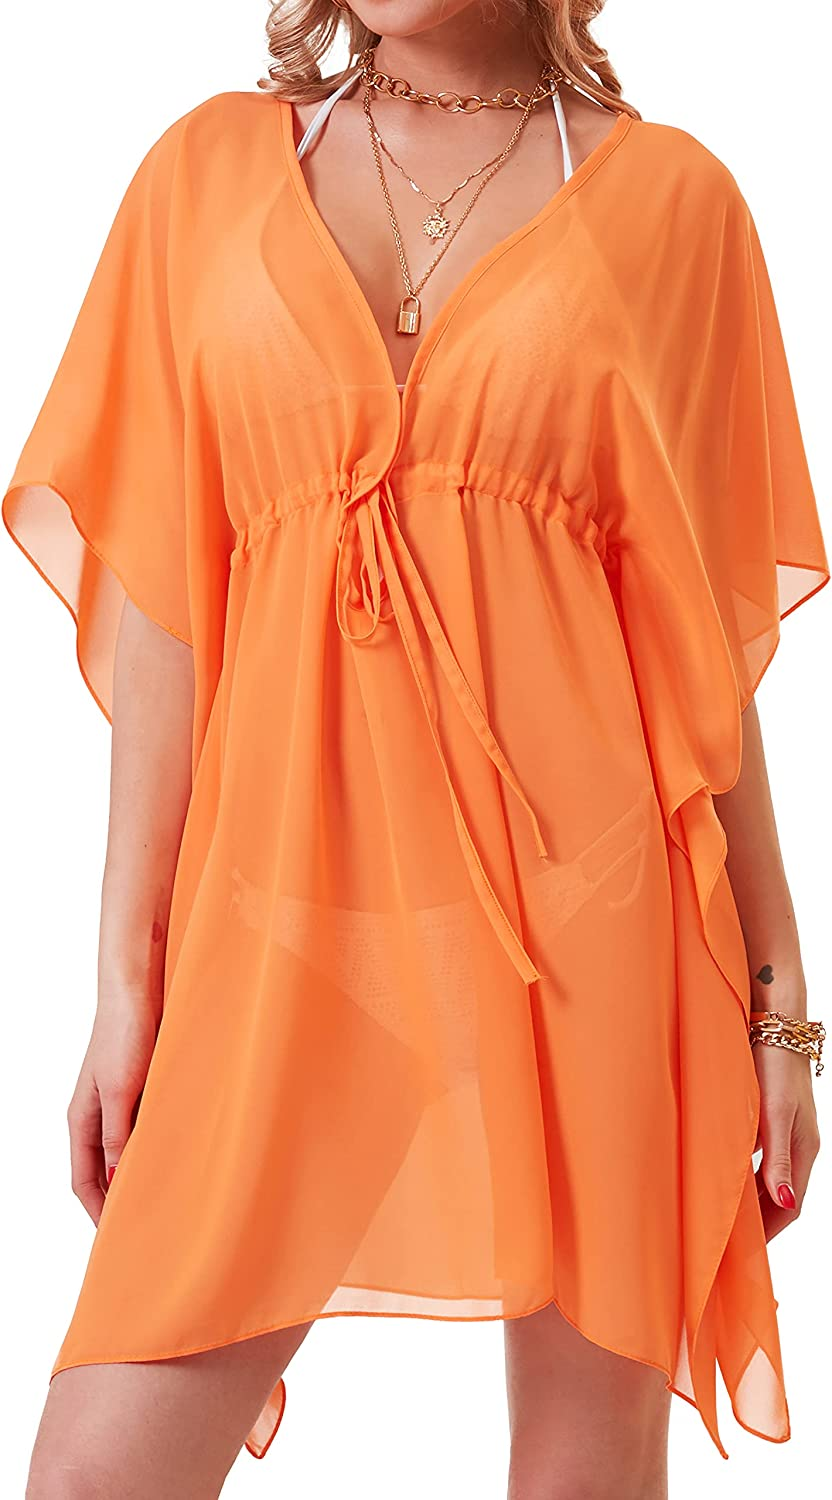 Soul Young Cover Ups for Swimwear Women V Neck Beach Chiffon Swimsuit Coverup Oversized